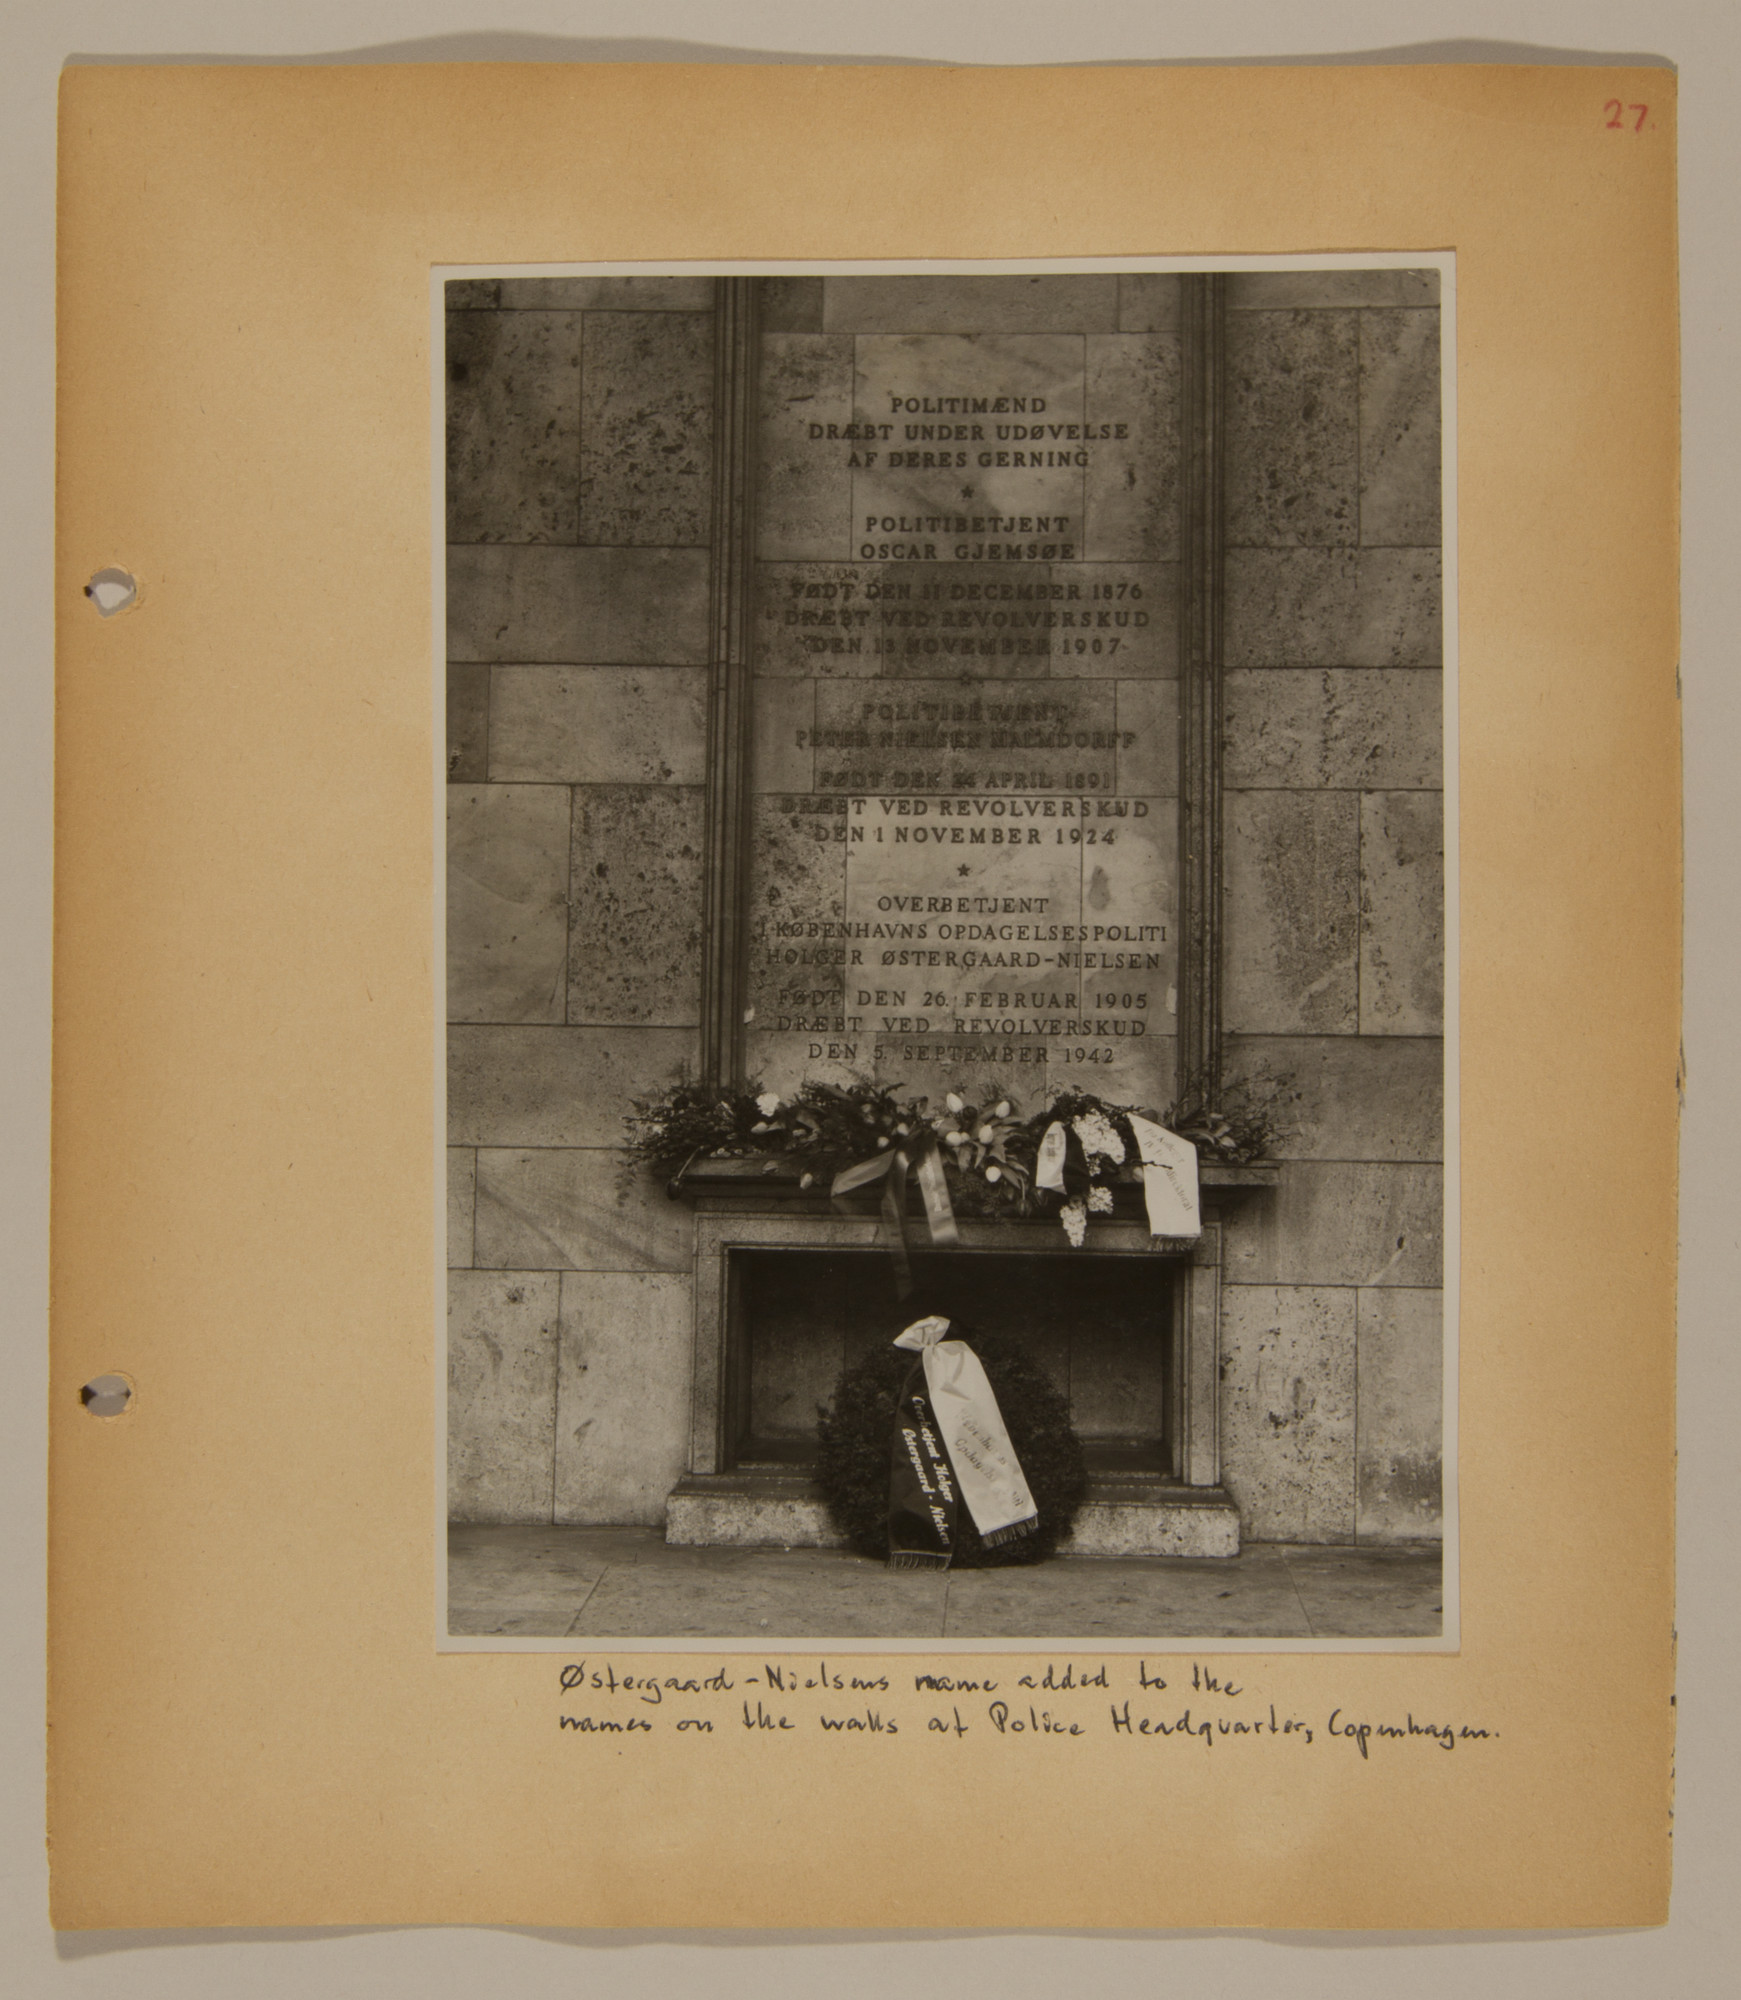 Page from volume three of a set of scrapbooks compiled by Bjorn Sibbern, a Danish policeman and resistance member, documenting the German occupation of Denmark.  This page contains a photograph of the memorial at the police headquarters in Copenhagen.